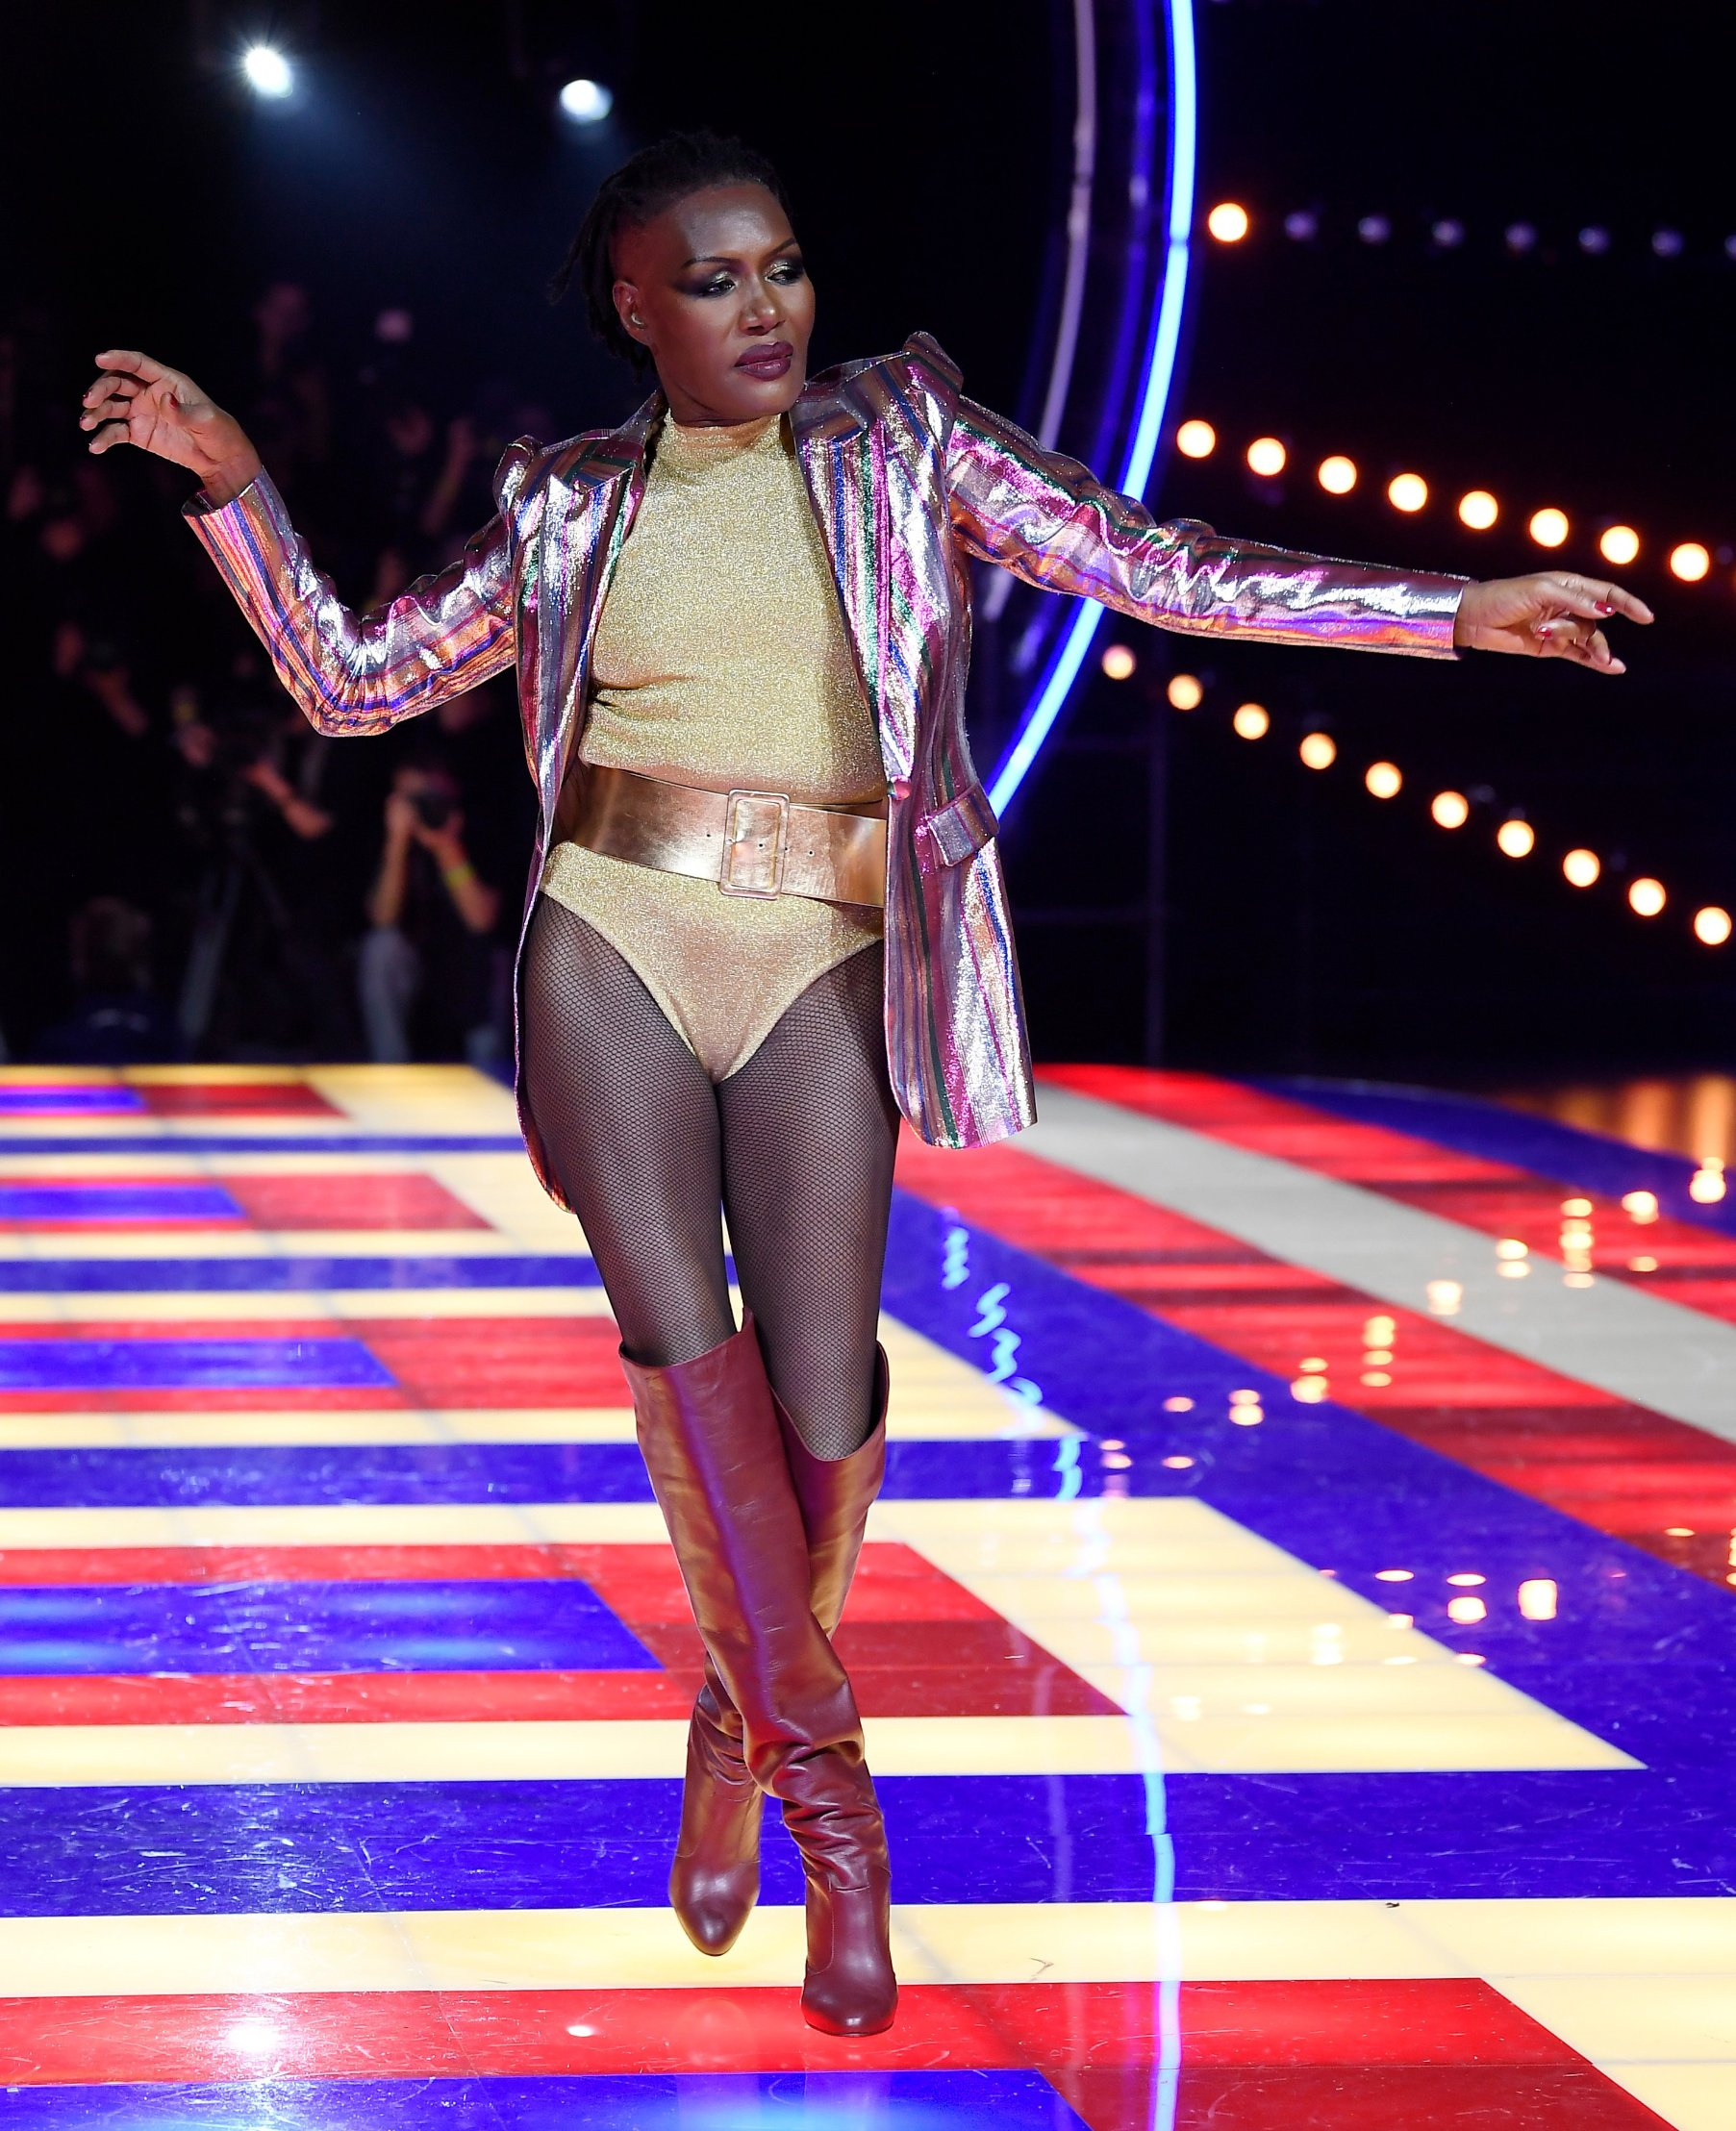 Grace Jones on the catwalk Tommy Hilfiger show, Runway, Fall Winter 2019, Paris Fashion Week, France - 02 Mar 2019, Image: 416924242, License: Rights-managed, Restrictions: , Model Release: no, Credit line: Profimedia, TEMP Rex Features